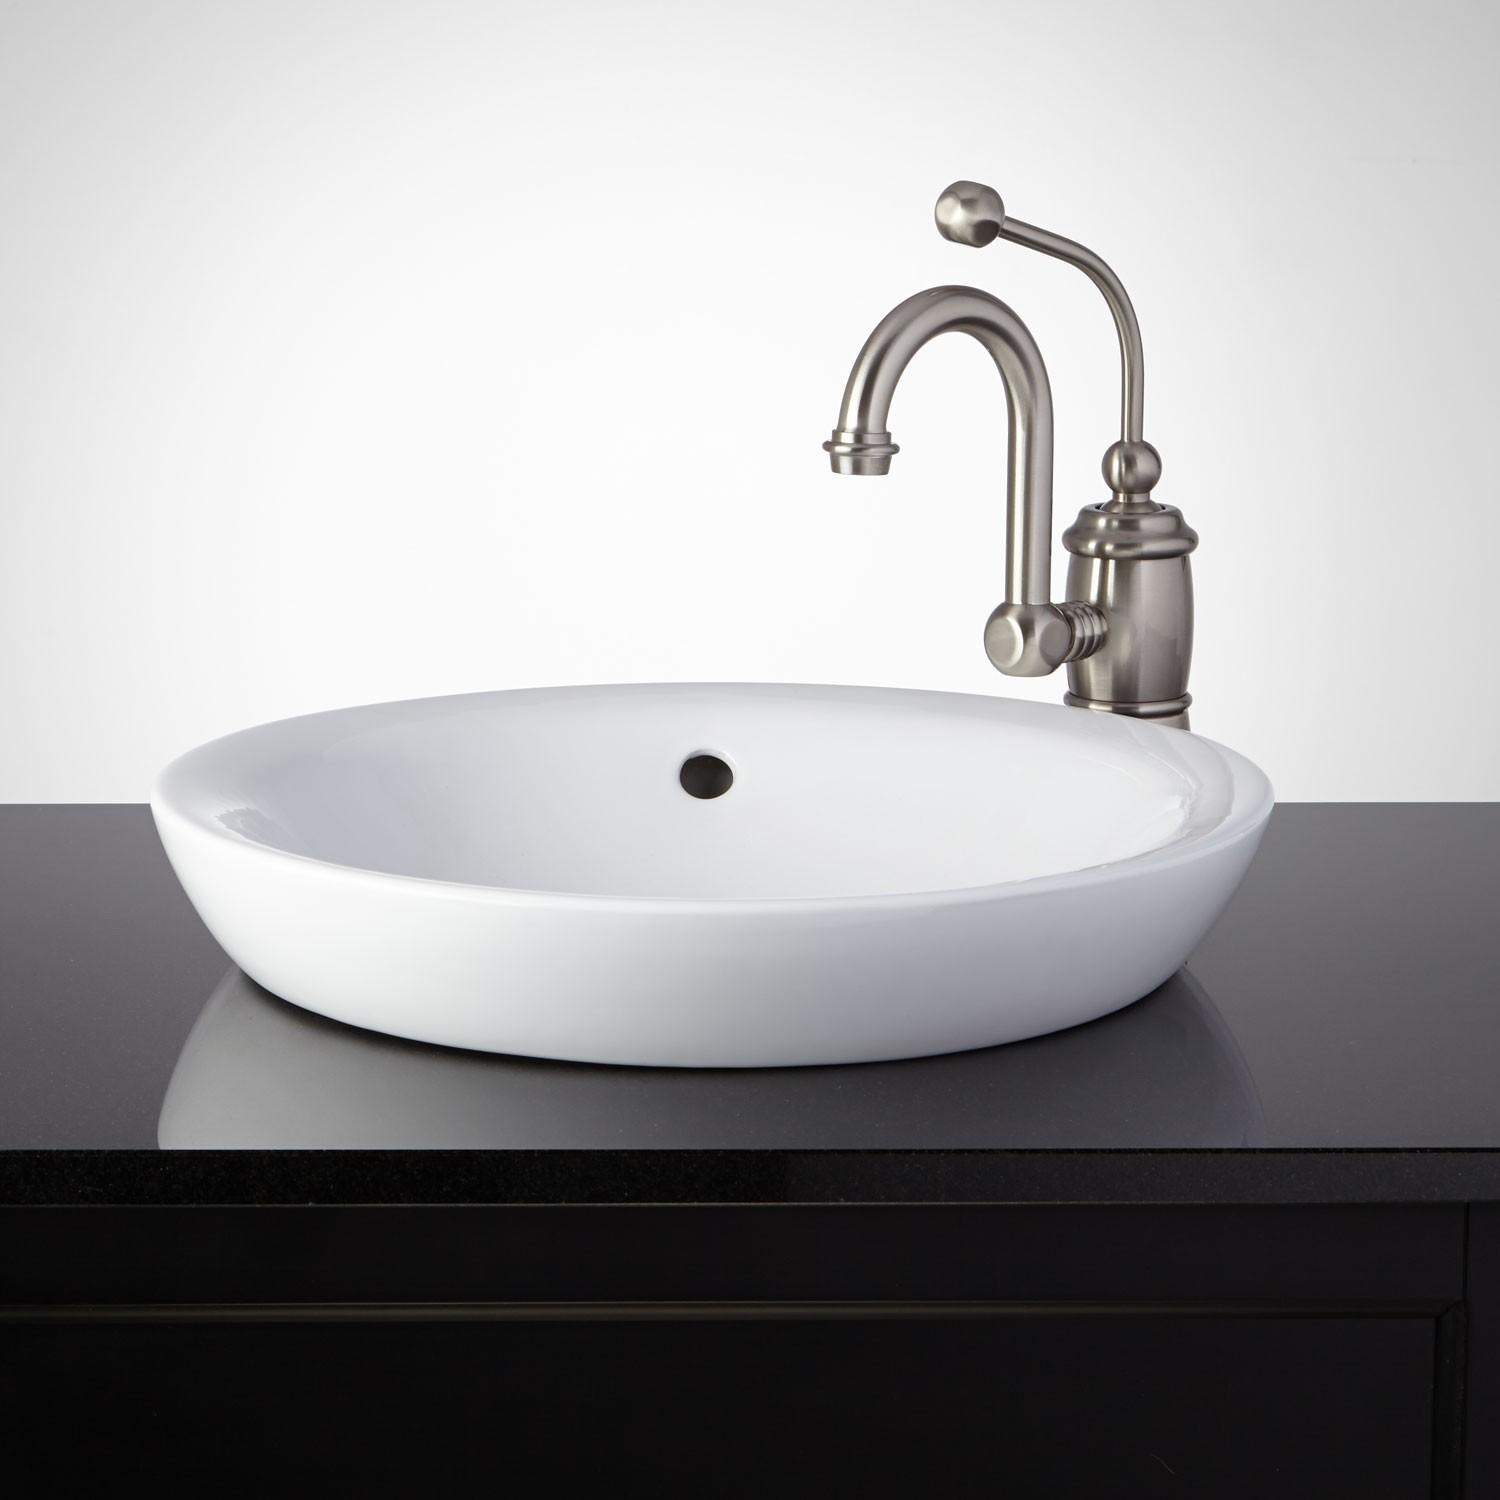 Milforde Porcelain Semi Recessed Sink